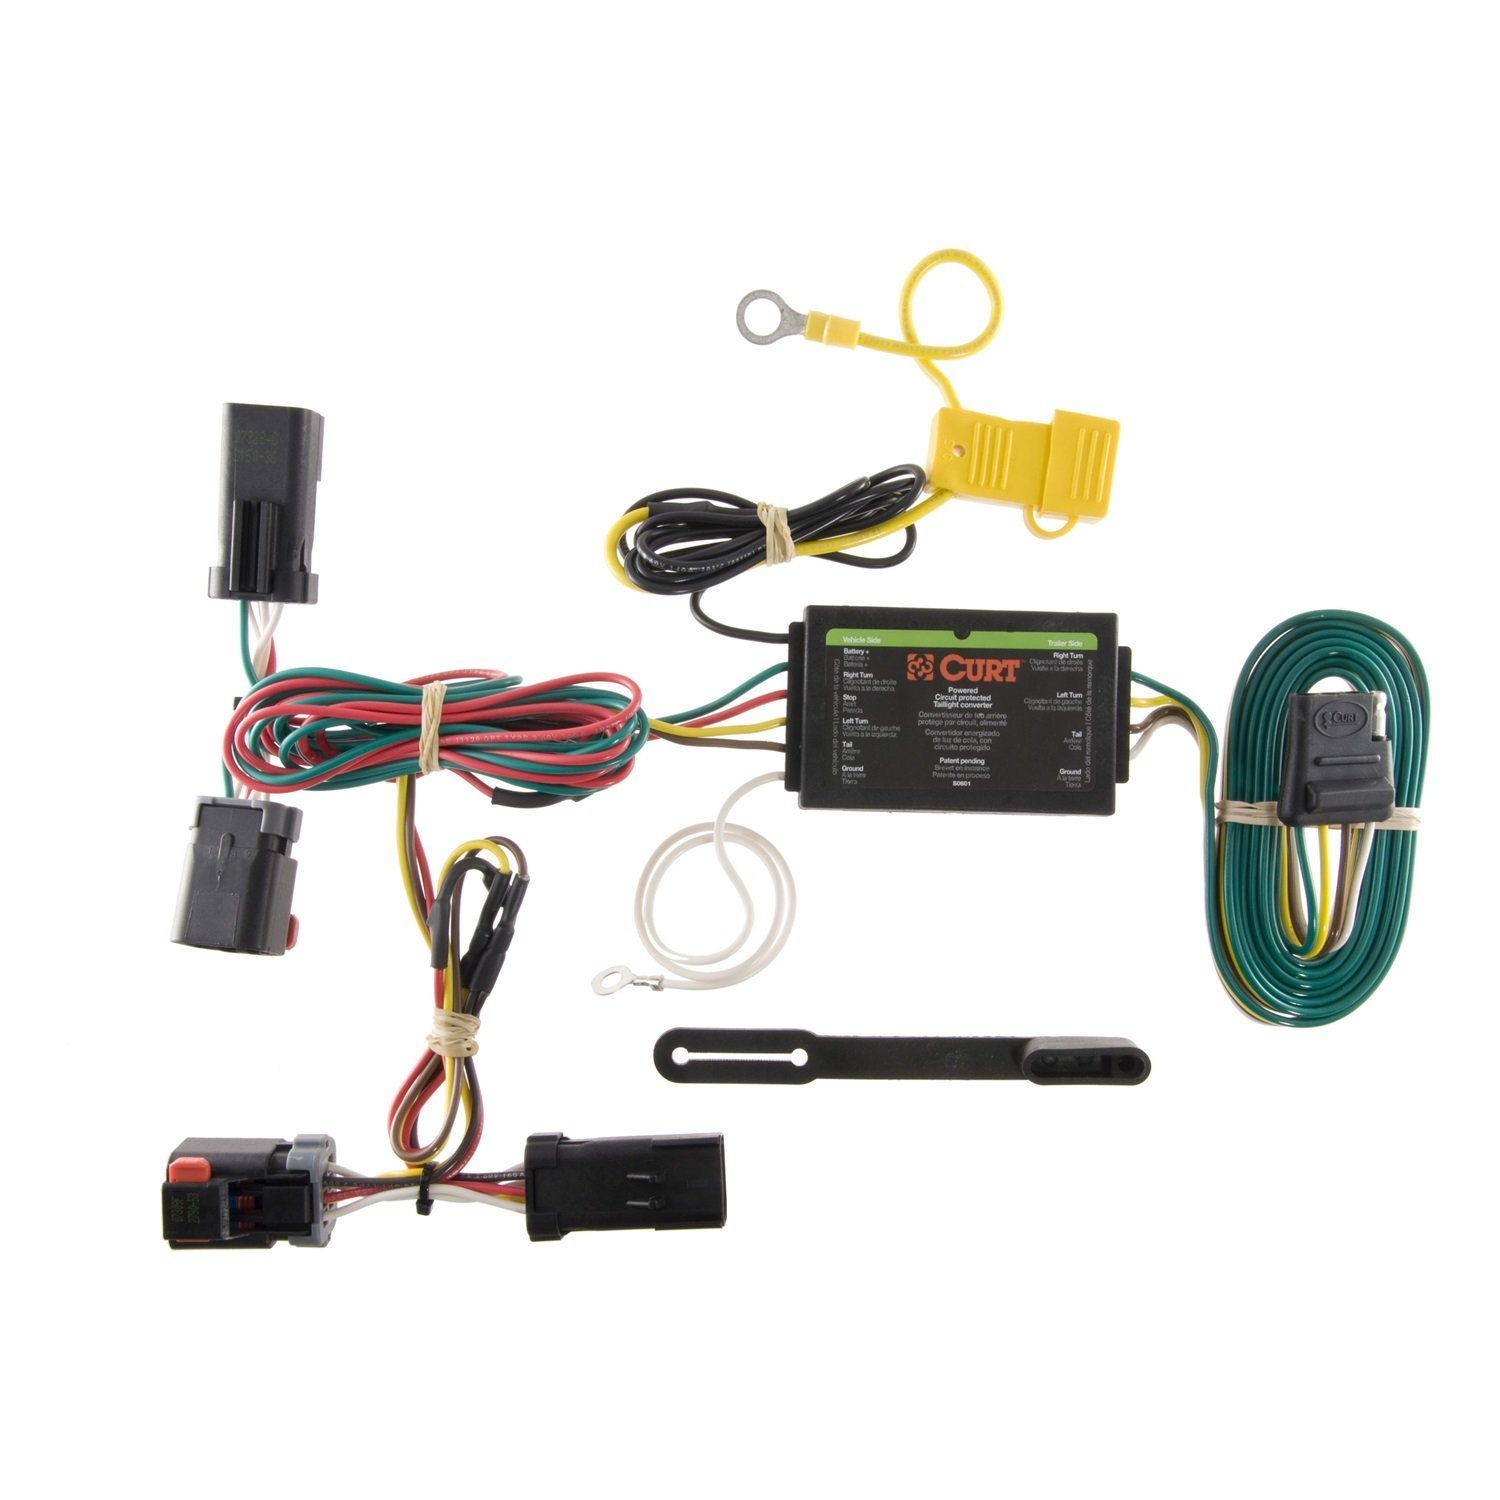 Cheap Wiring Harness For Trailer Hitch Find Chrysler Automotive Get Quotations Fits 2011 300c Plug Play Wire